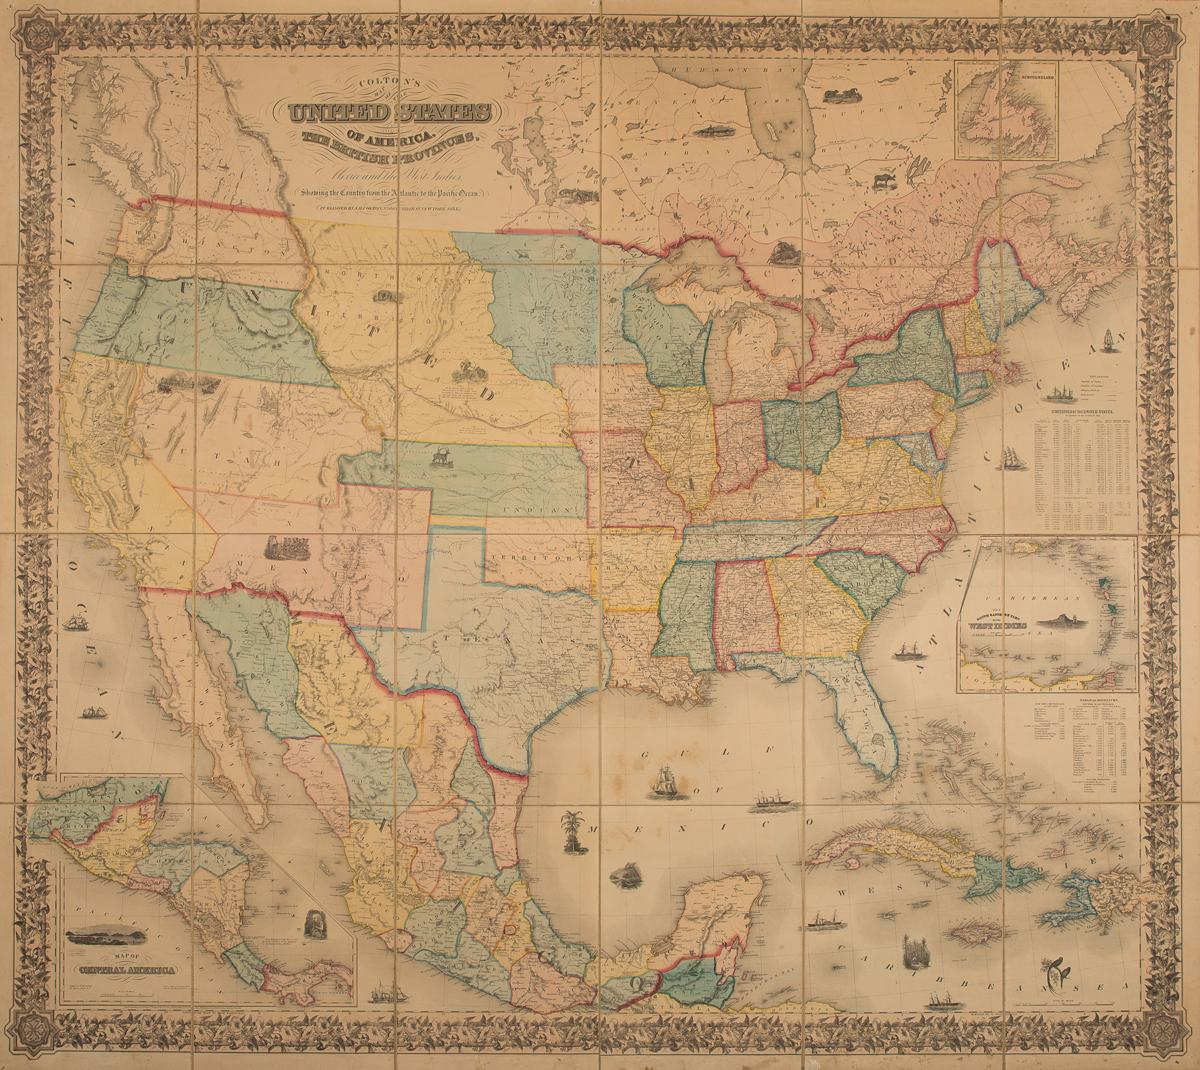 Colton S Map Of The United States Of America The British Provinces - Pacific-ocean-on-us-map